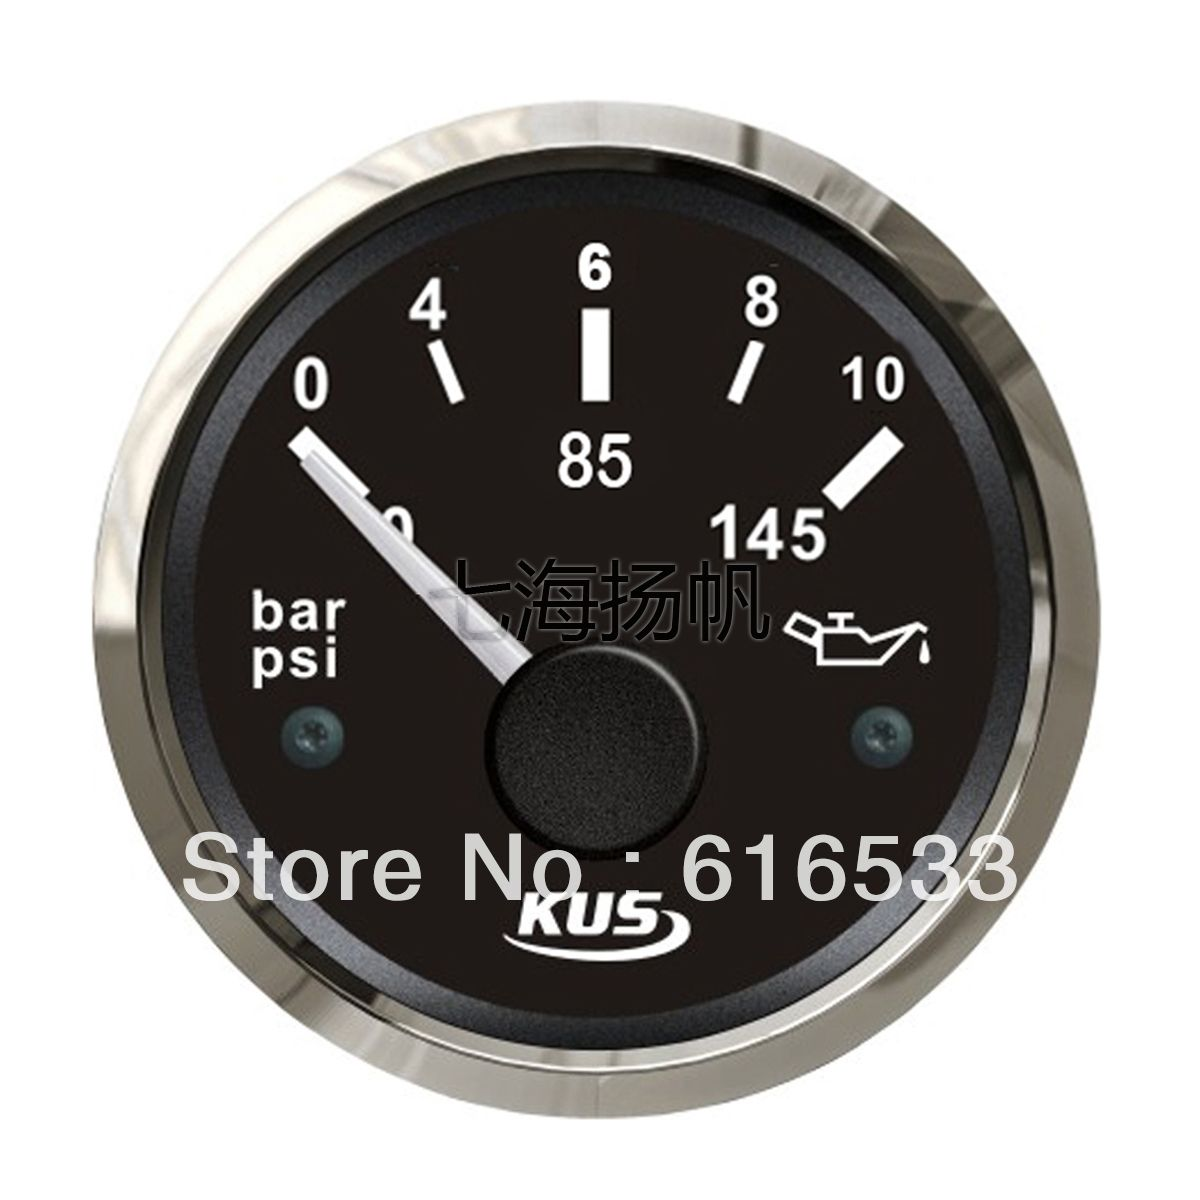 52mm 12 24v Black Oil Pressure Gauge Marine Car Rv General Yacht Motor Boat Accessories Free Shipping 79 28 Motor Boats Marine Oil Gauges